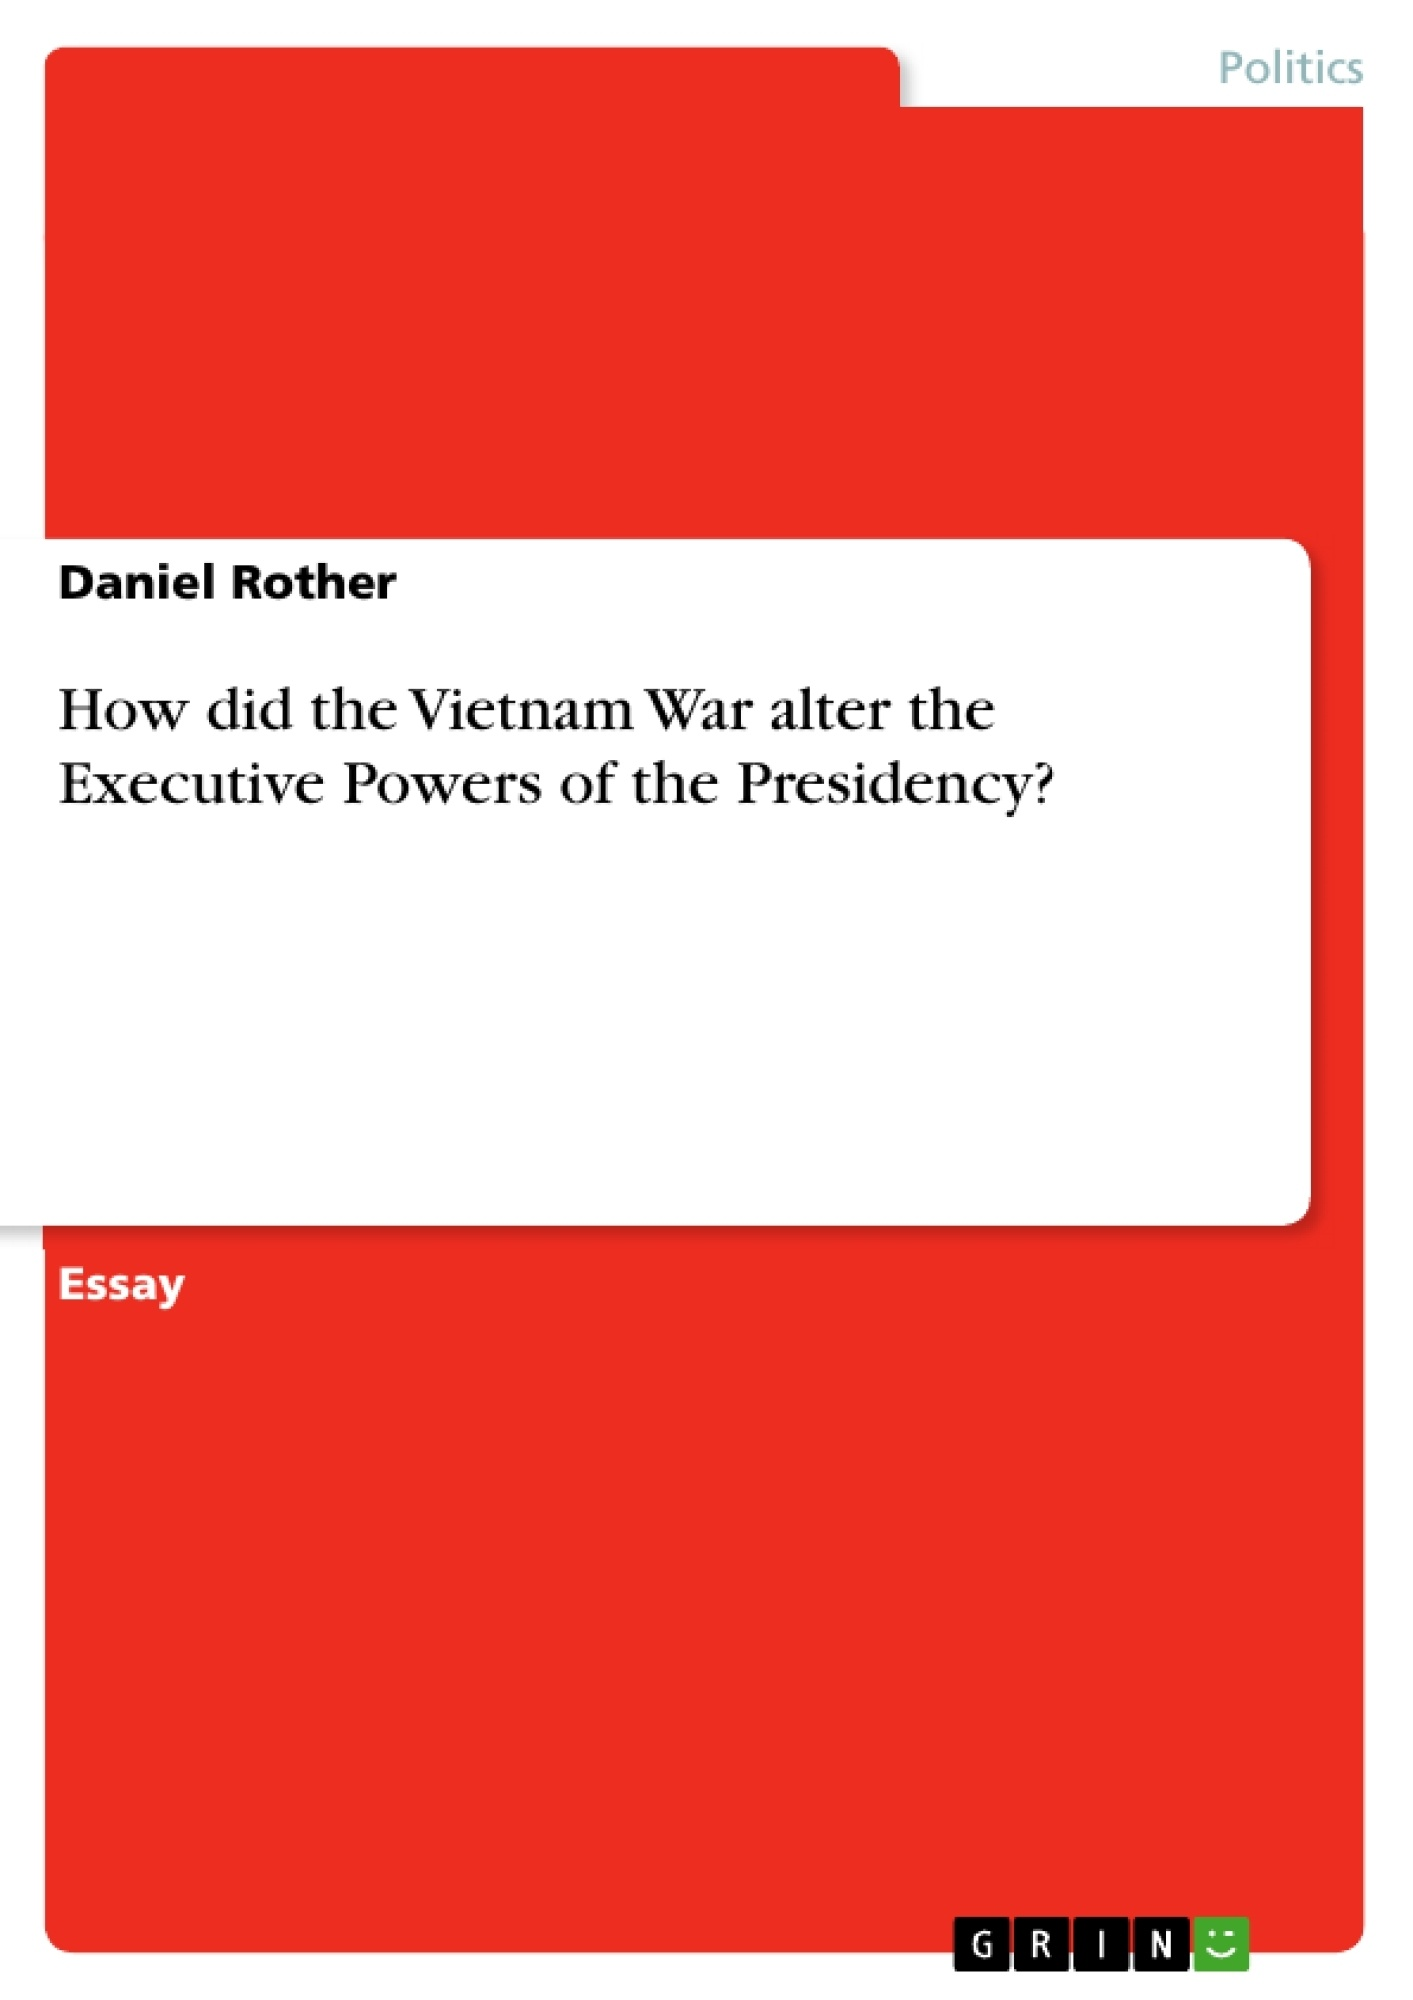 Title: How did the Vietnam War alter the Executive Powers of the Presidency?